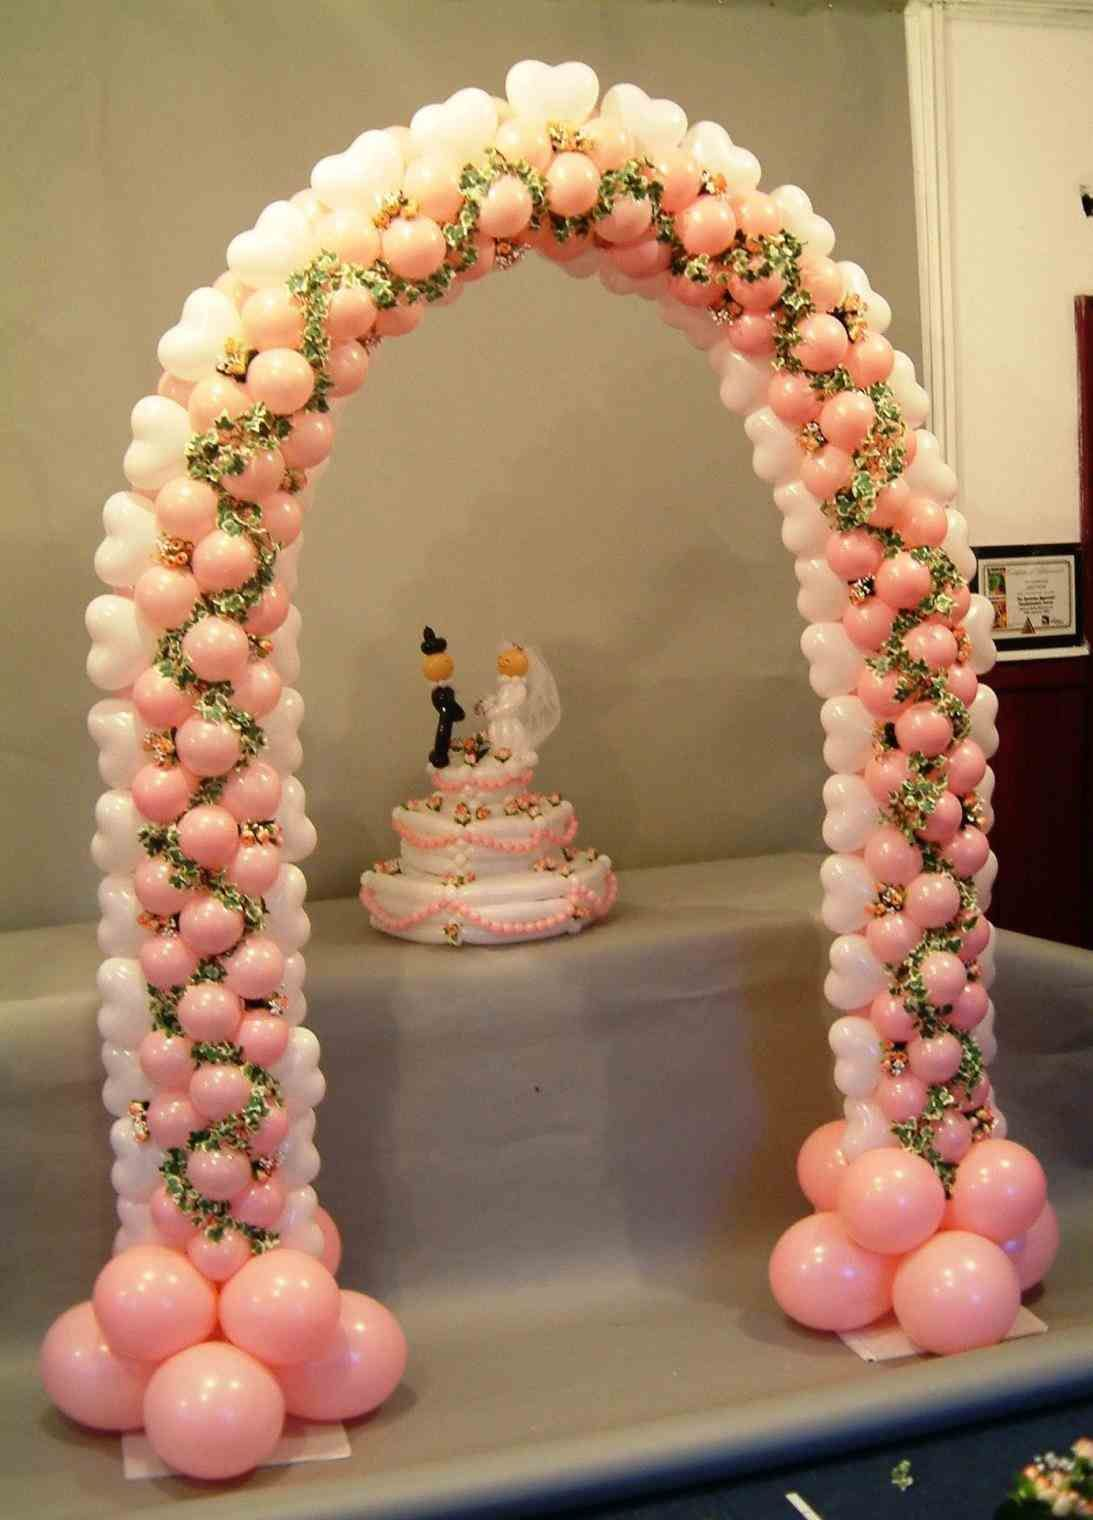 as their event venue heart balloon wedding arch shaped for